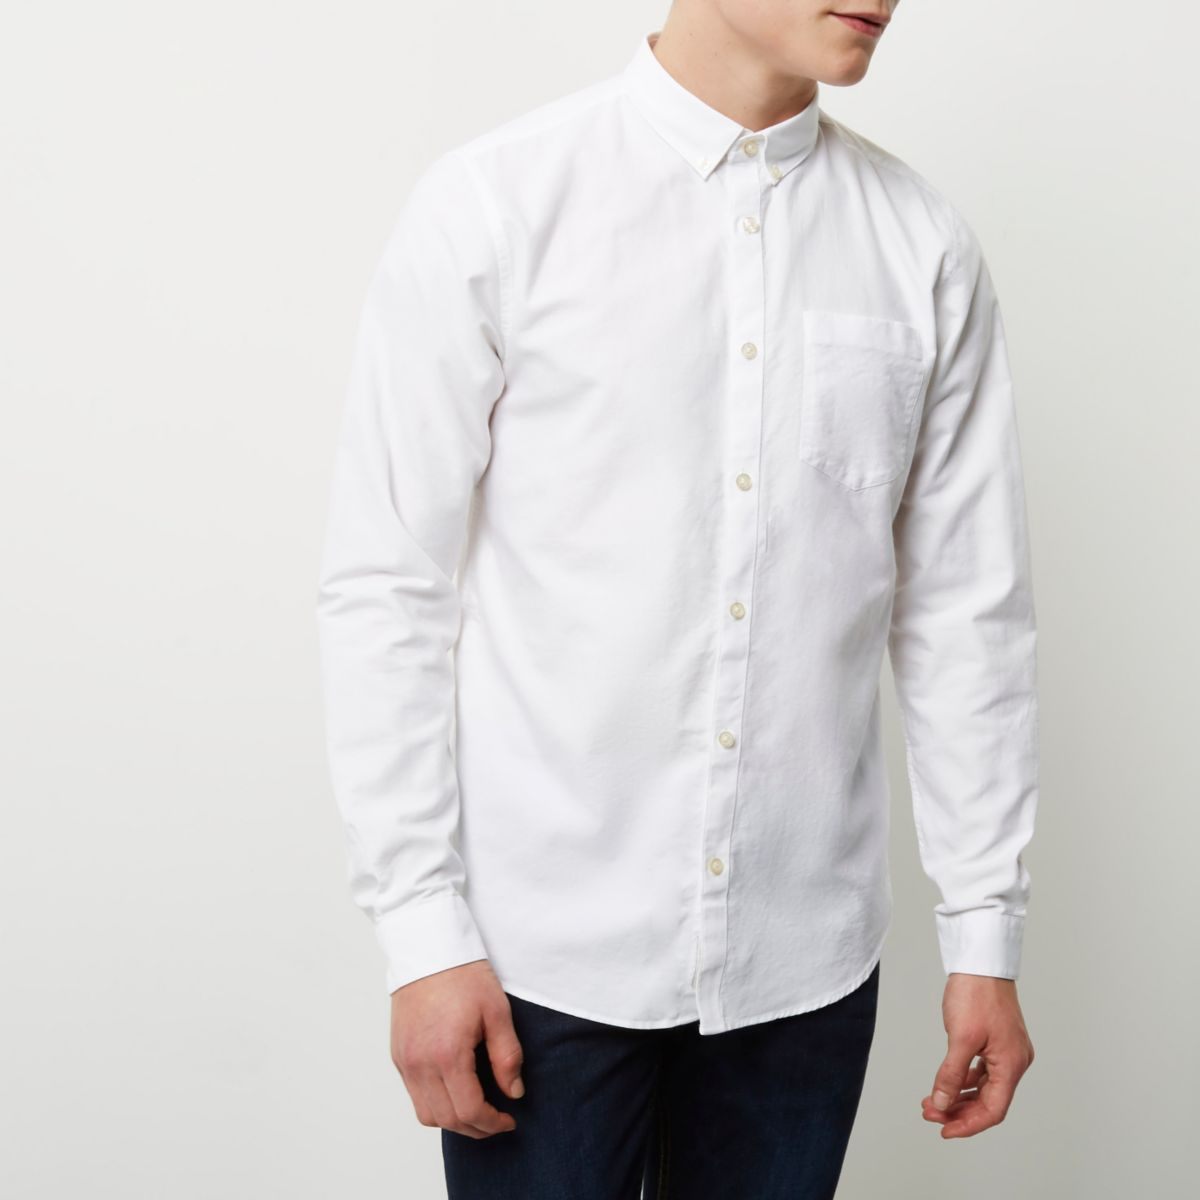 Men's casual shirts can come in many styles, from men's plain T-shirts to button-down henley shirts that can be worn alone or layered. Cotton is the most popular fabric pick for men's casual T-shirts and henley shirts because they are easy to wash and comfortable to wear.